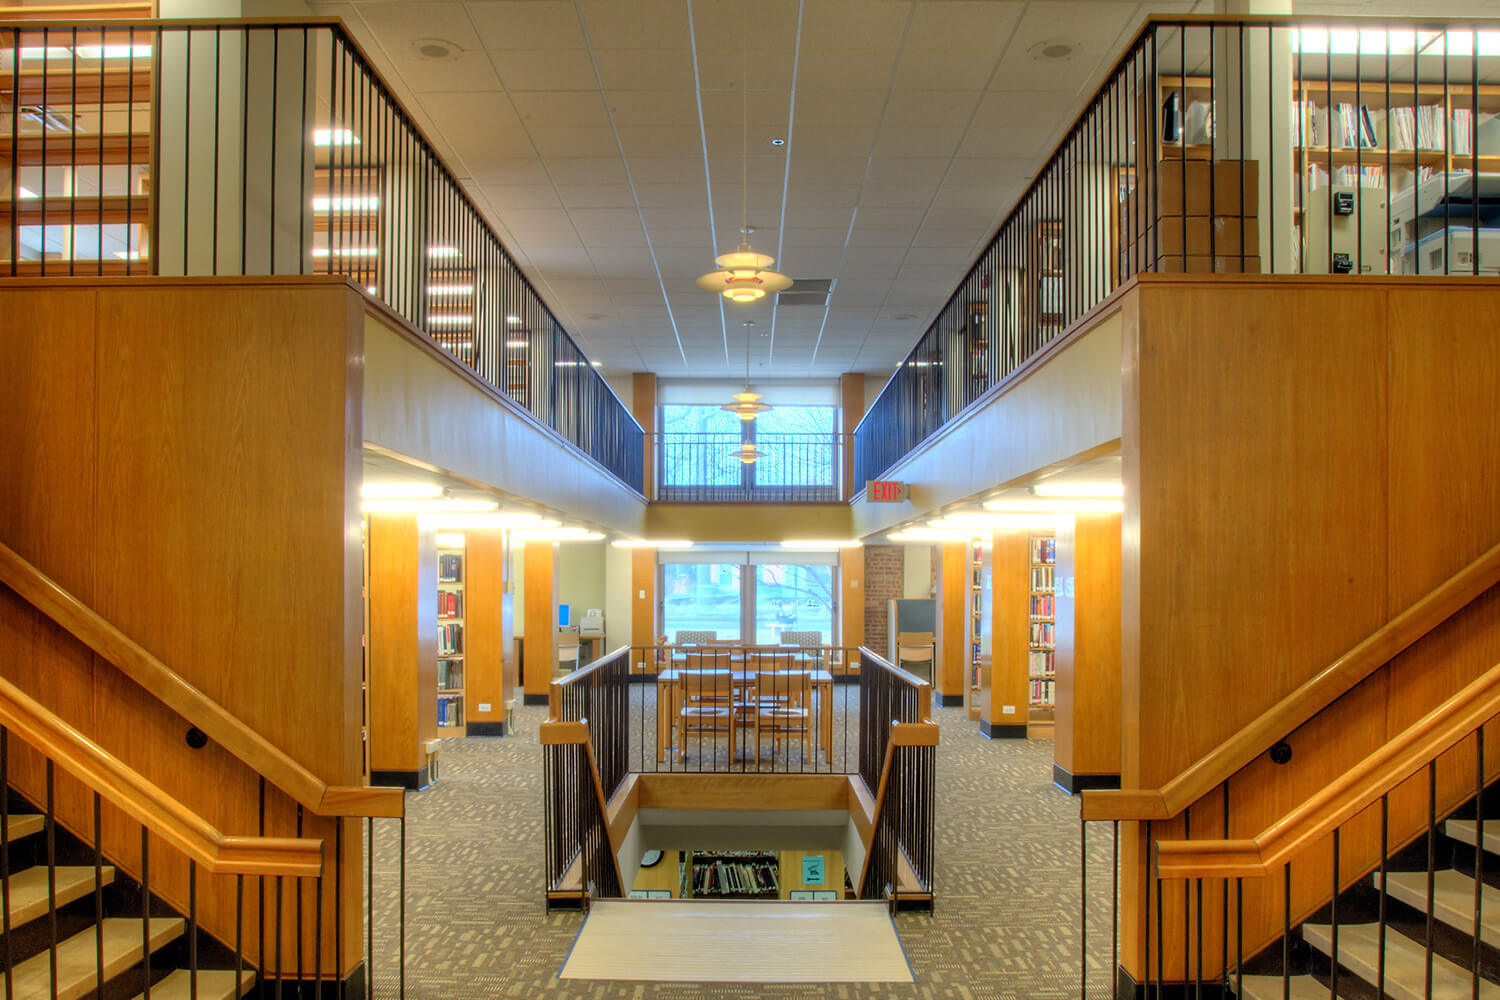 Wilmette Public Library District Renovation interior 10